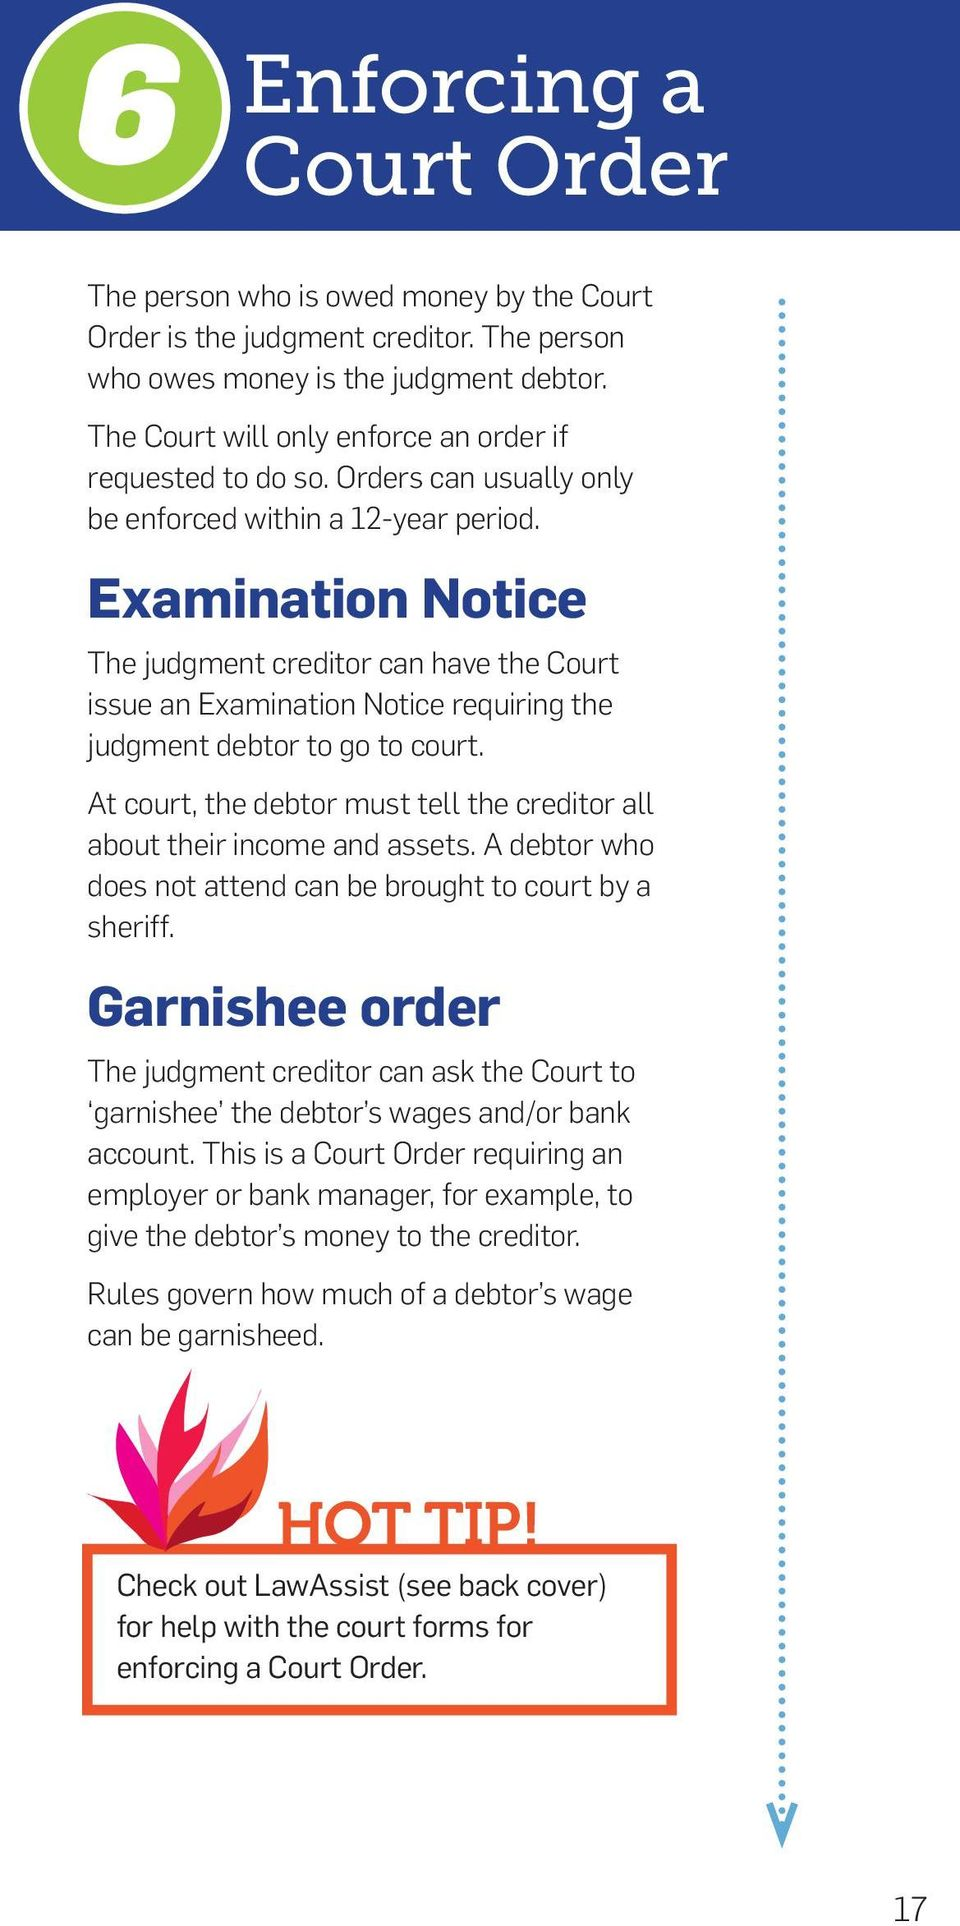 Examination Notice The judgment creditor can have the Court issue an Examination Notice requiring the judgment debtor to go to court.